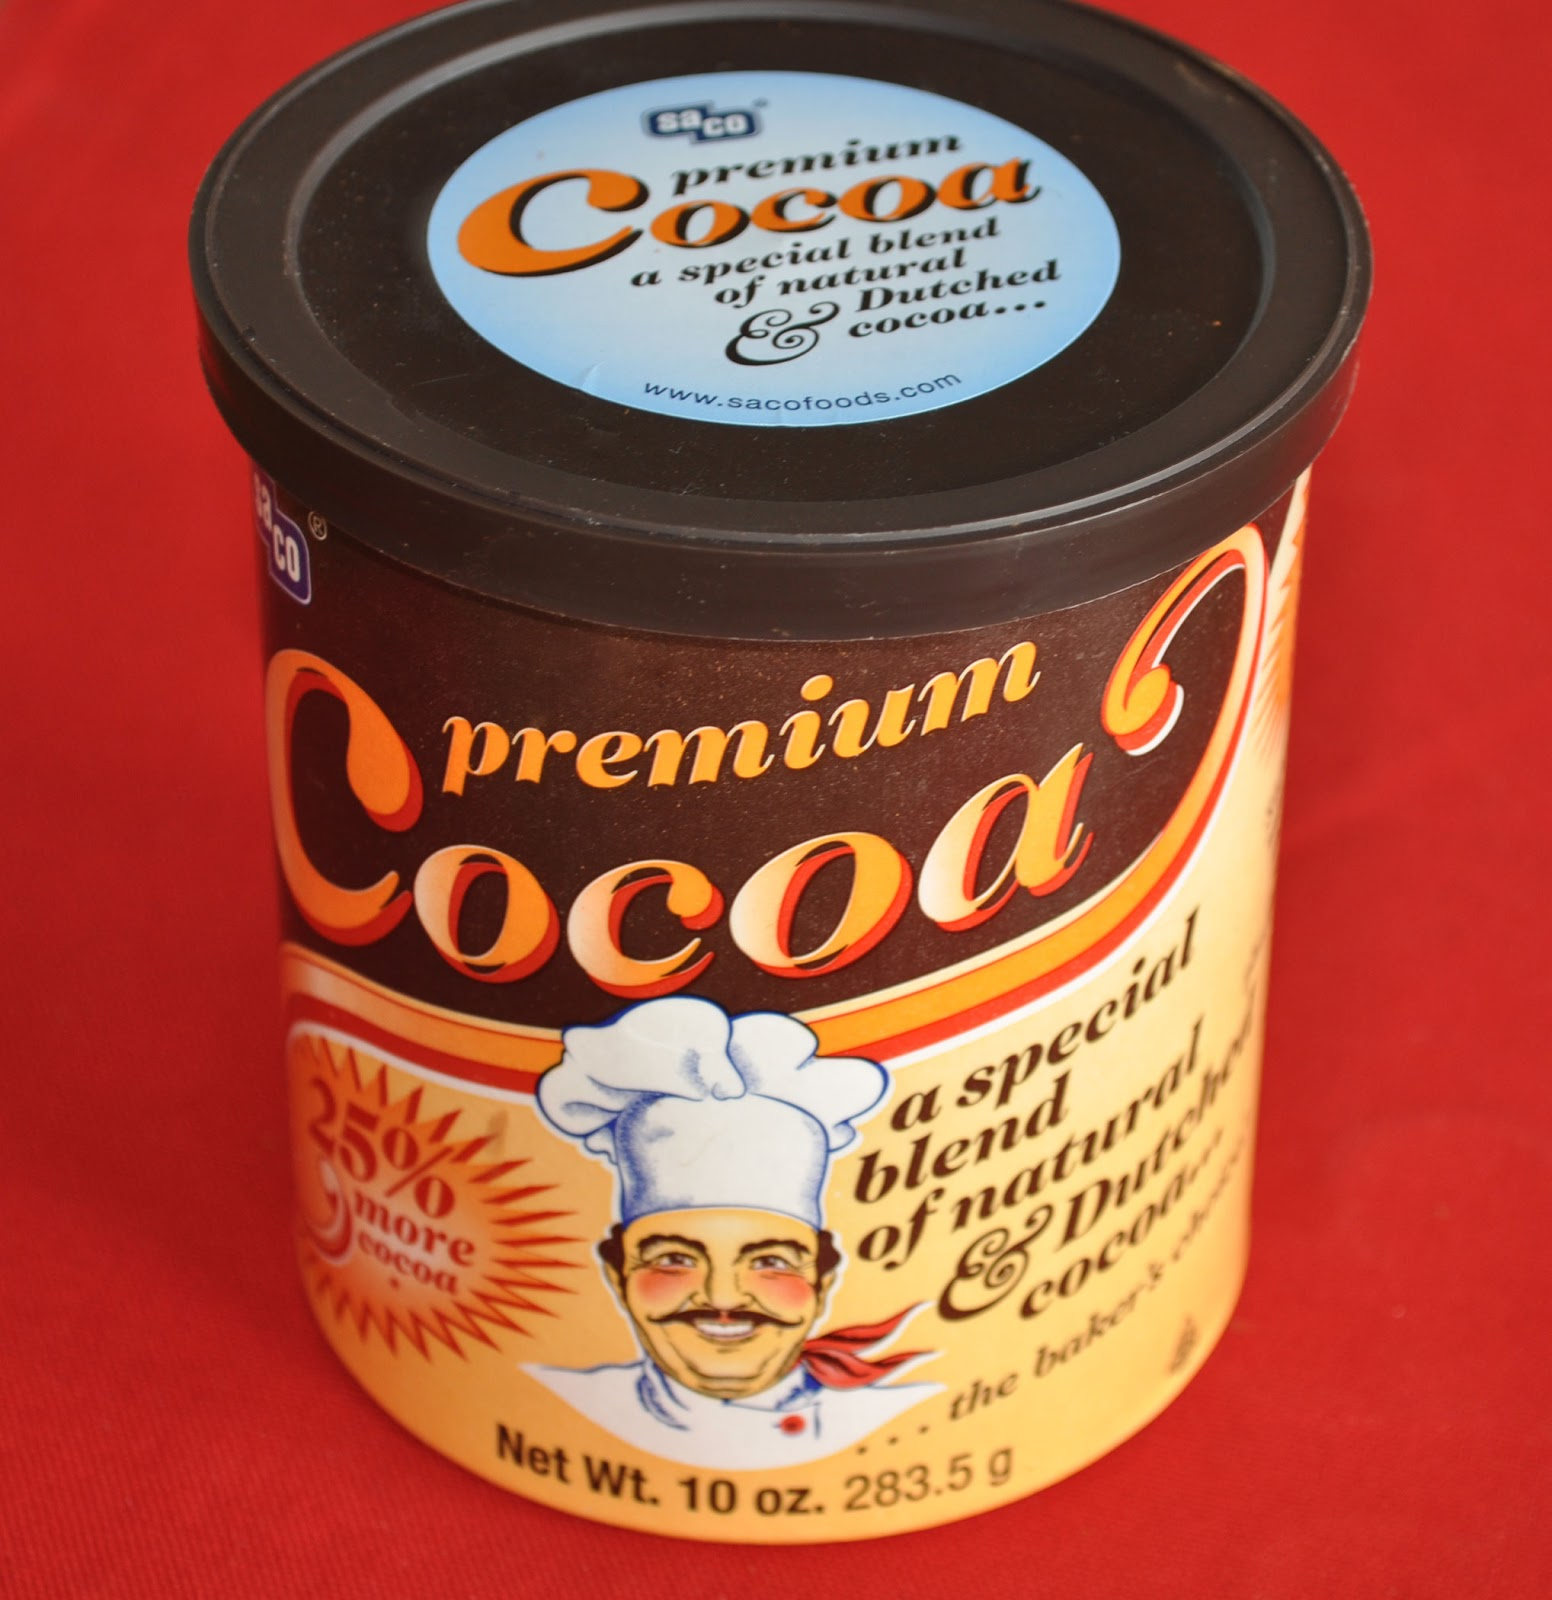 Dutched cocoa brands